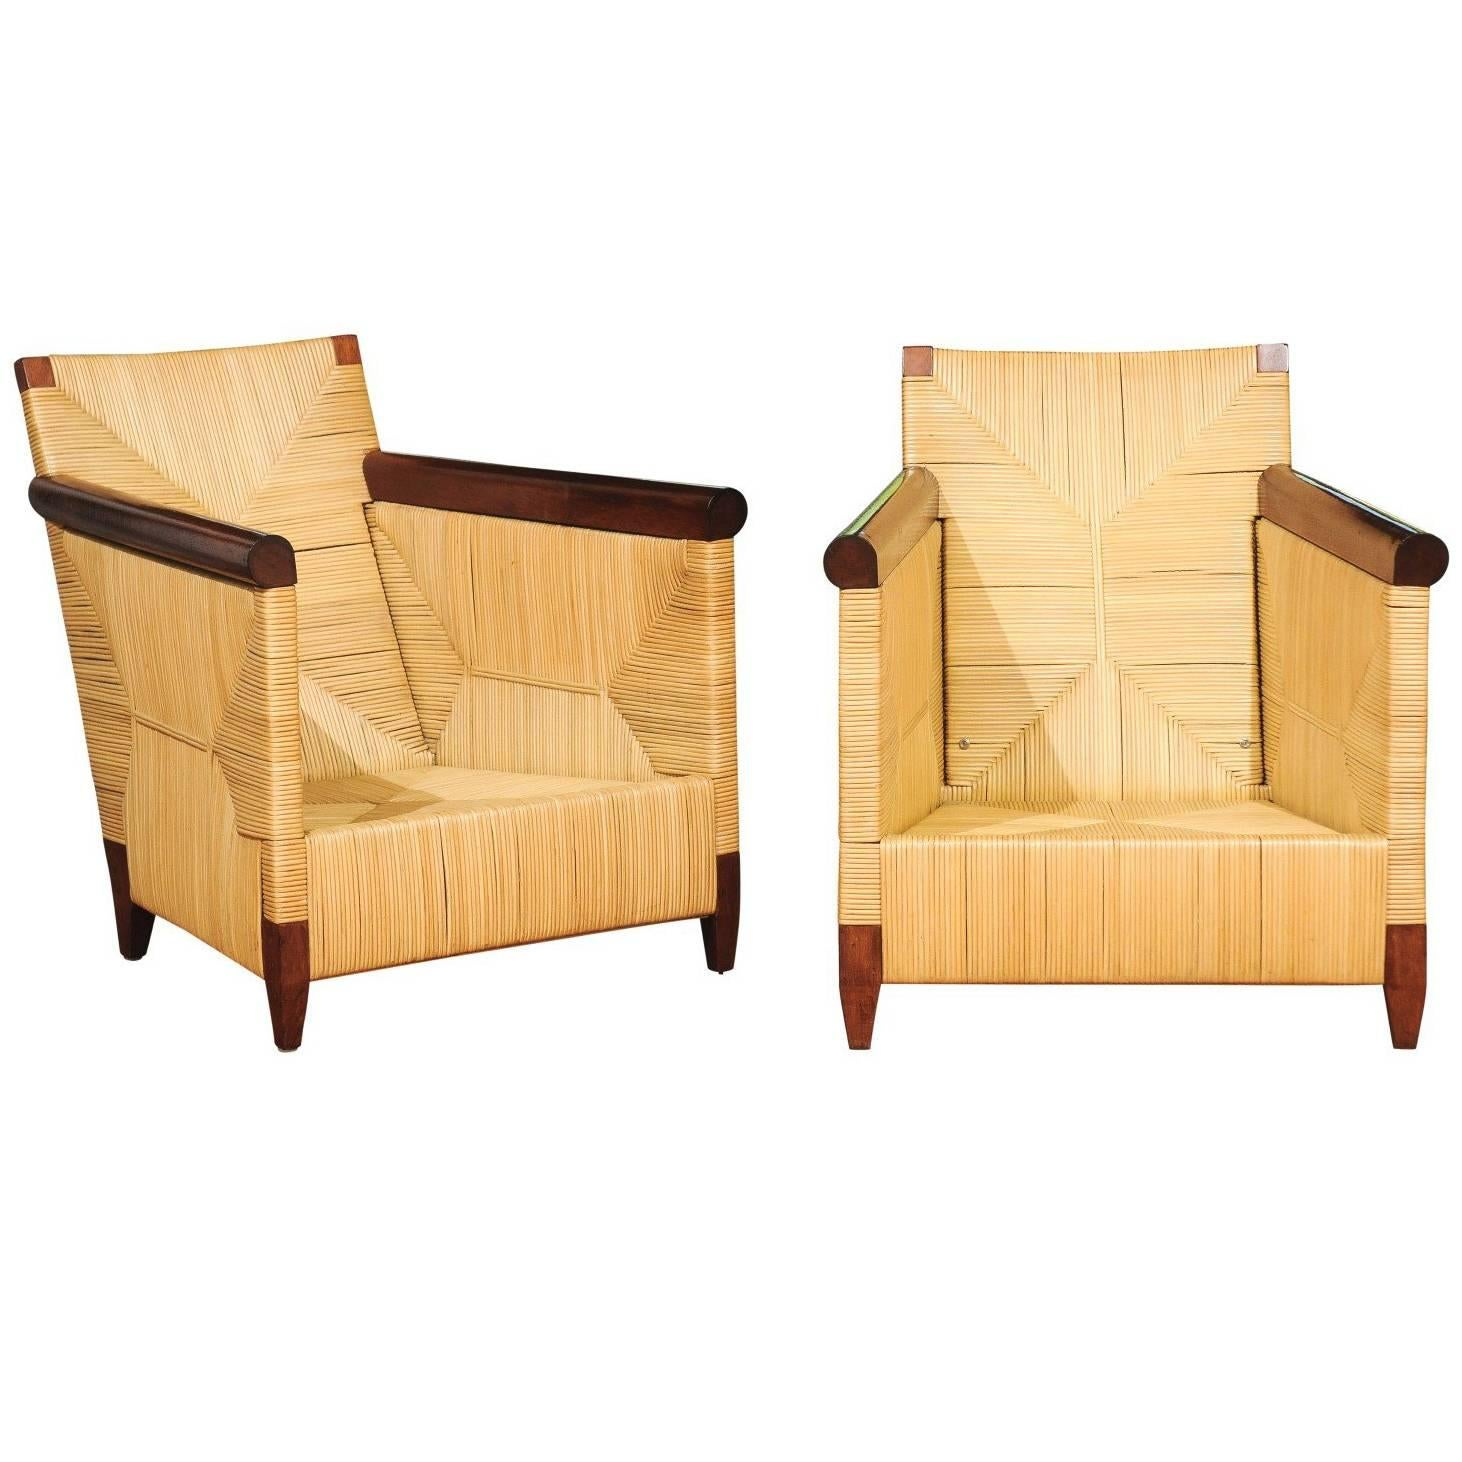 Superb Pair of Mahogany and Wicker Loungers by John Hutton for Donghia